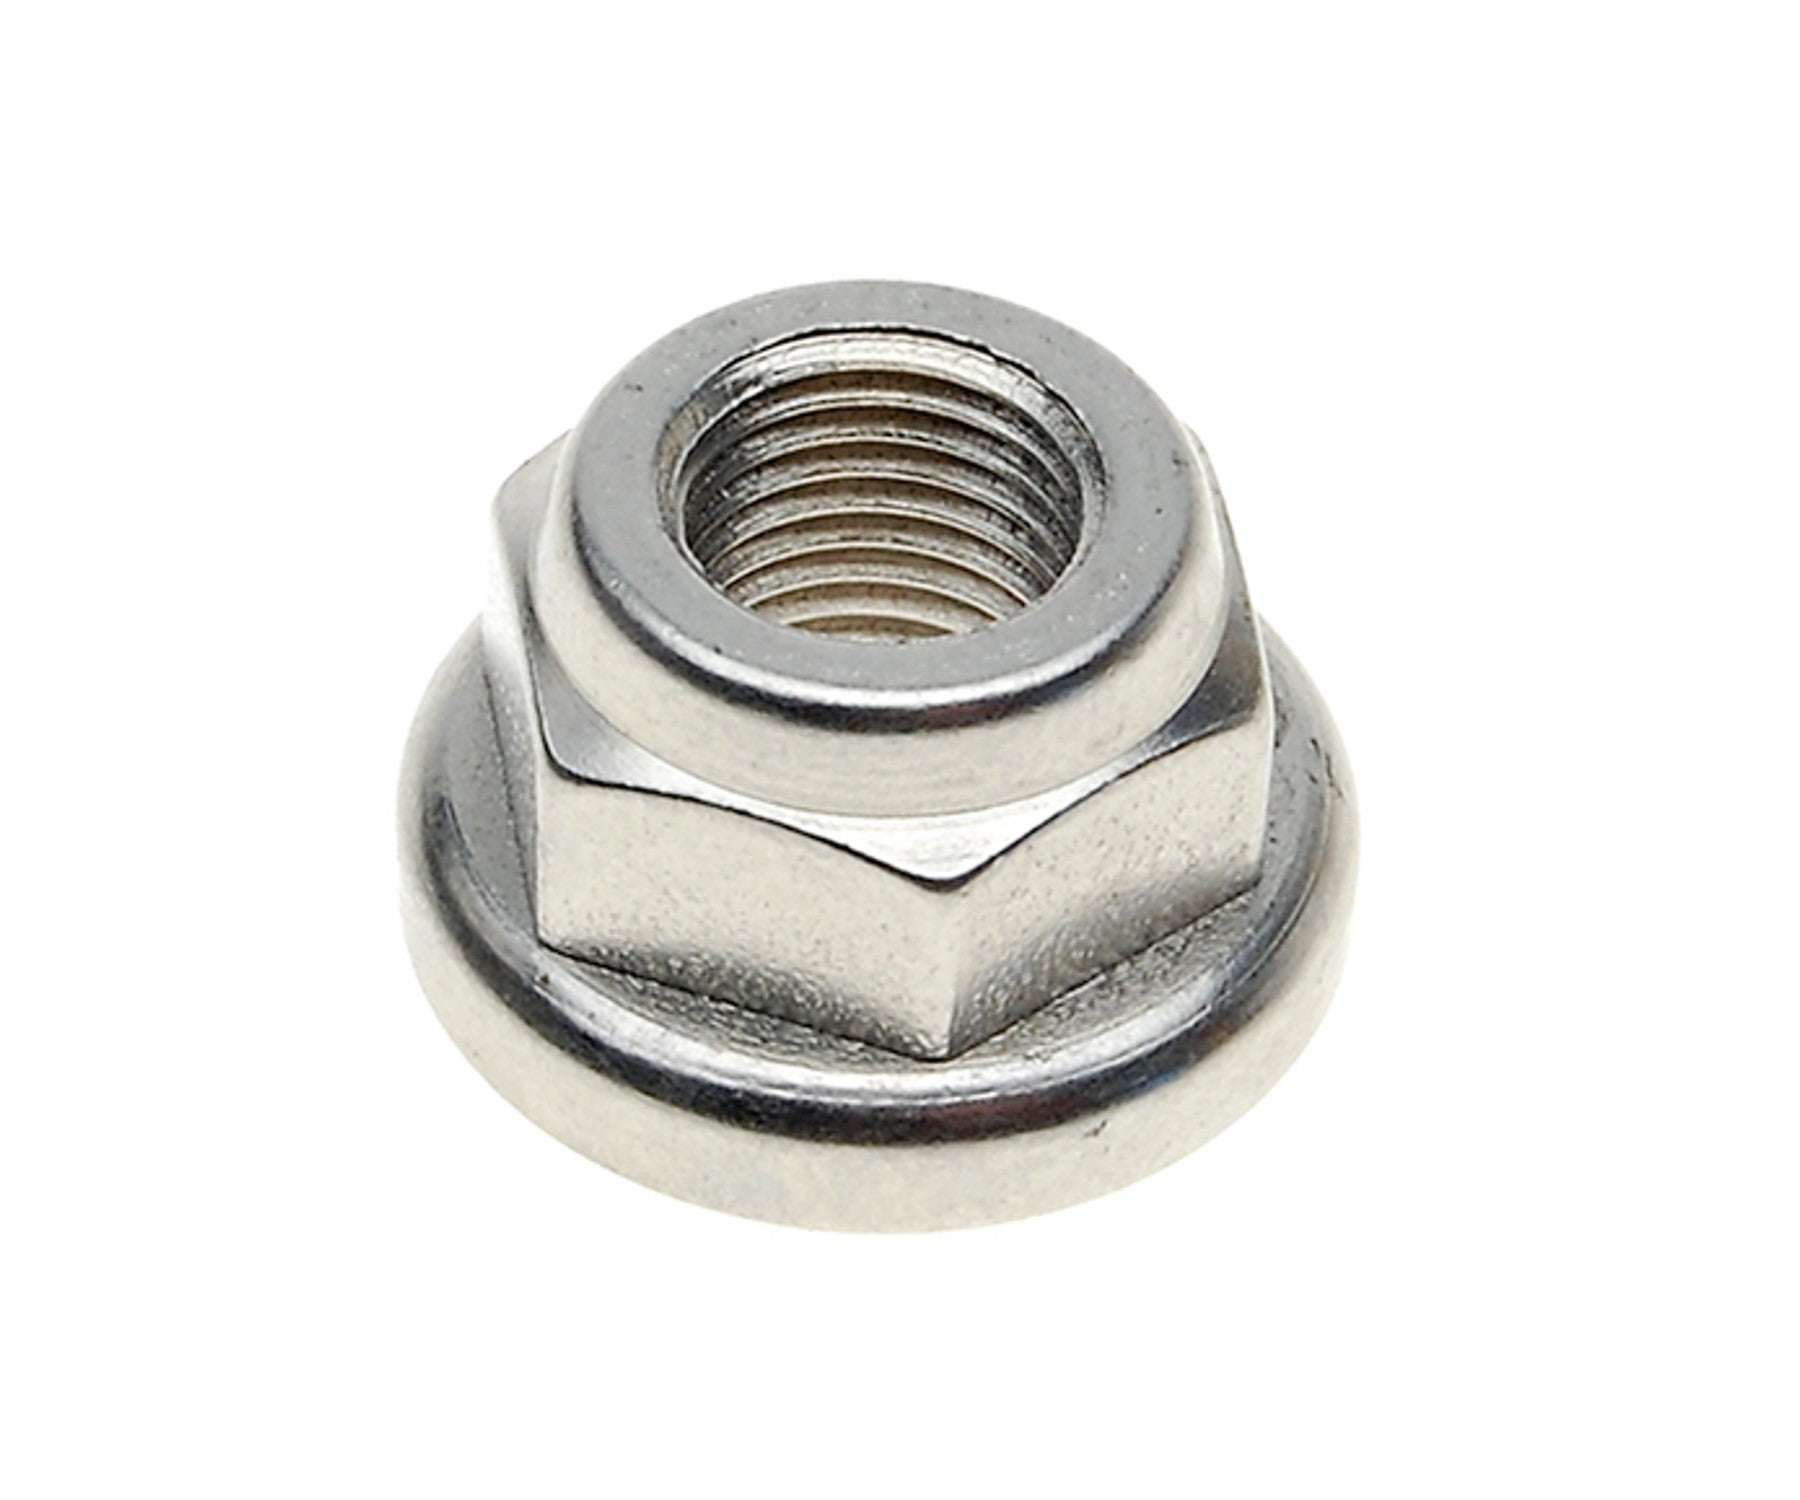 Campagnolo track axle nut - Retrogression